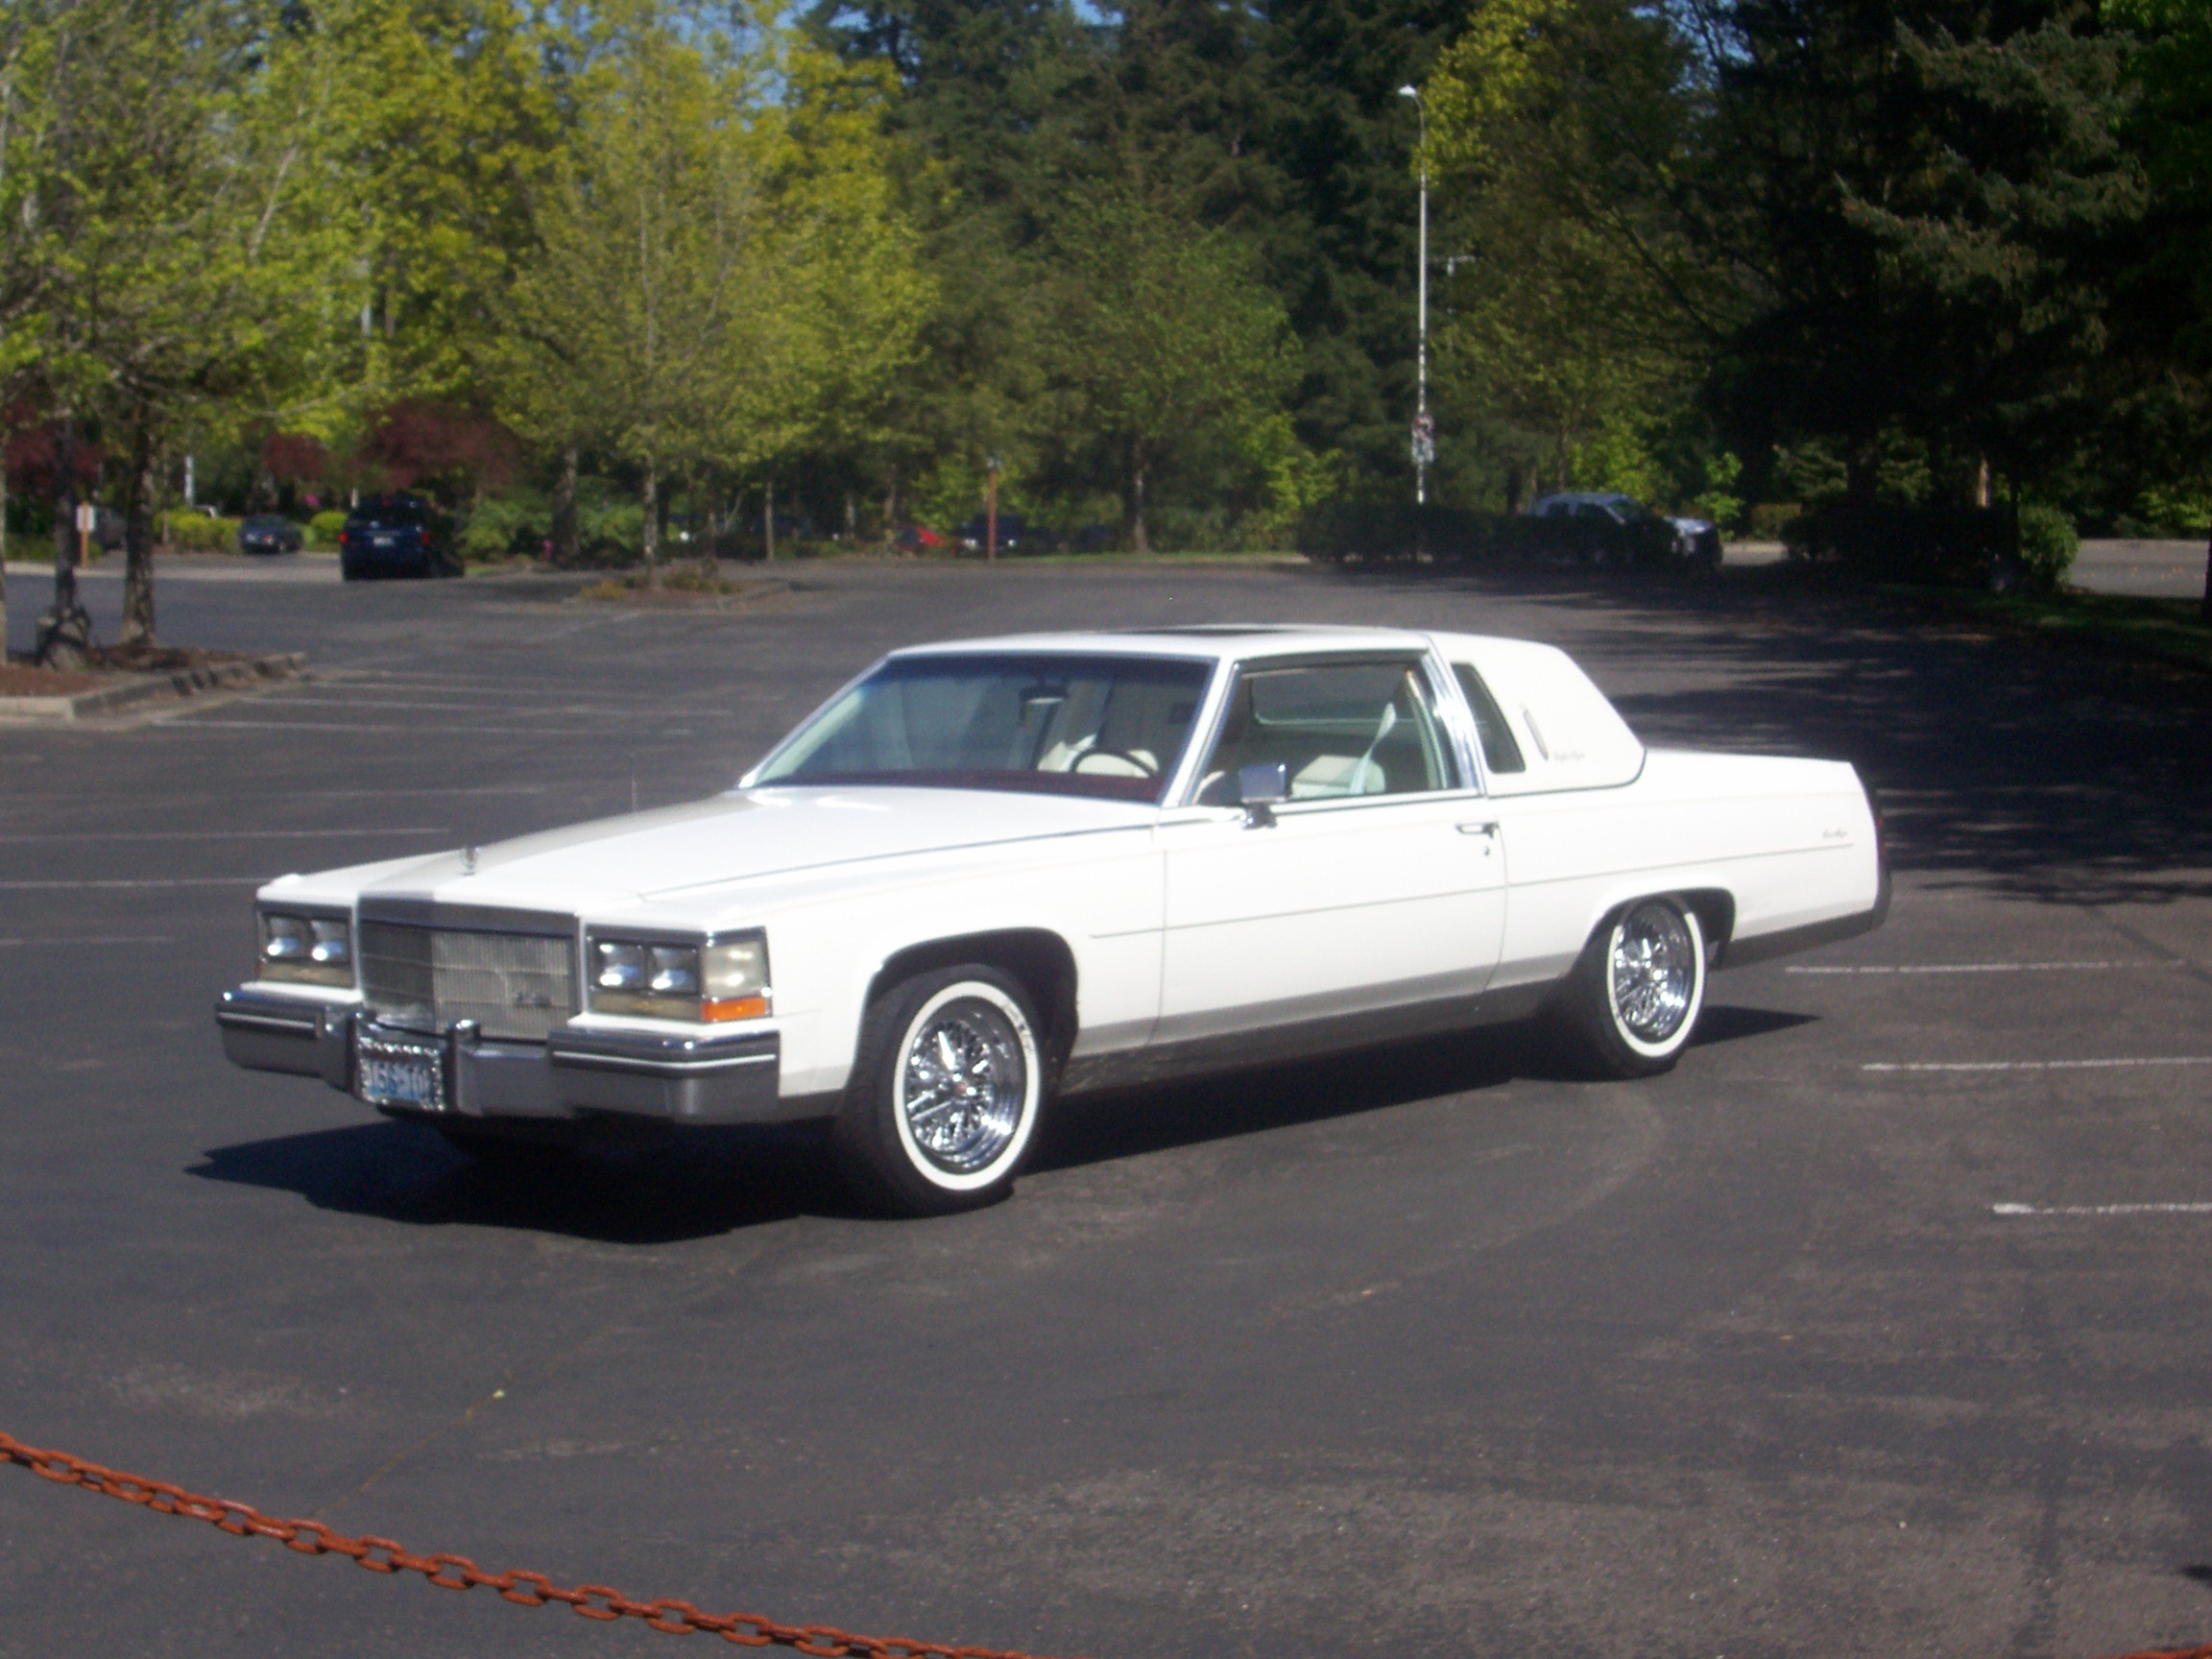 navjac 1985 Cadillac Fleetwood Specs Photos Modification Info at